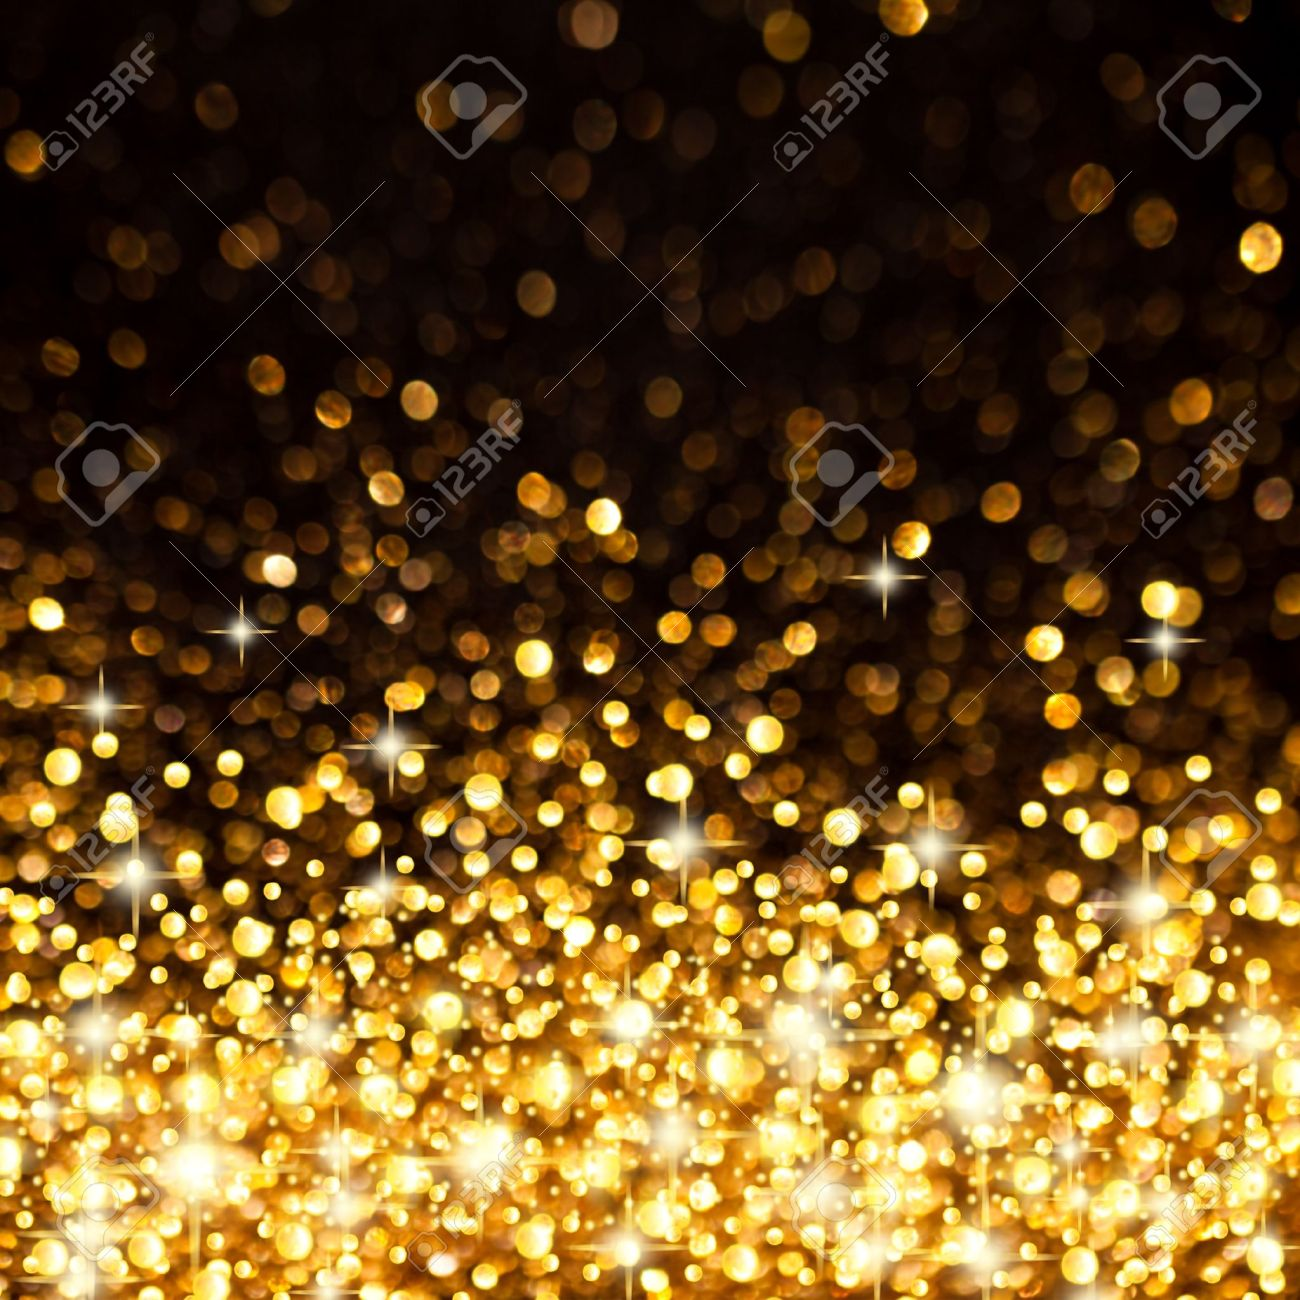 newest 4d14a 1ecb1 Image of Golden Christmas Lights Background